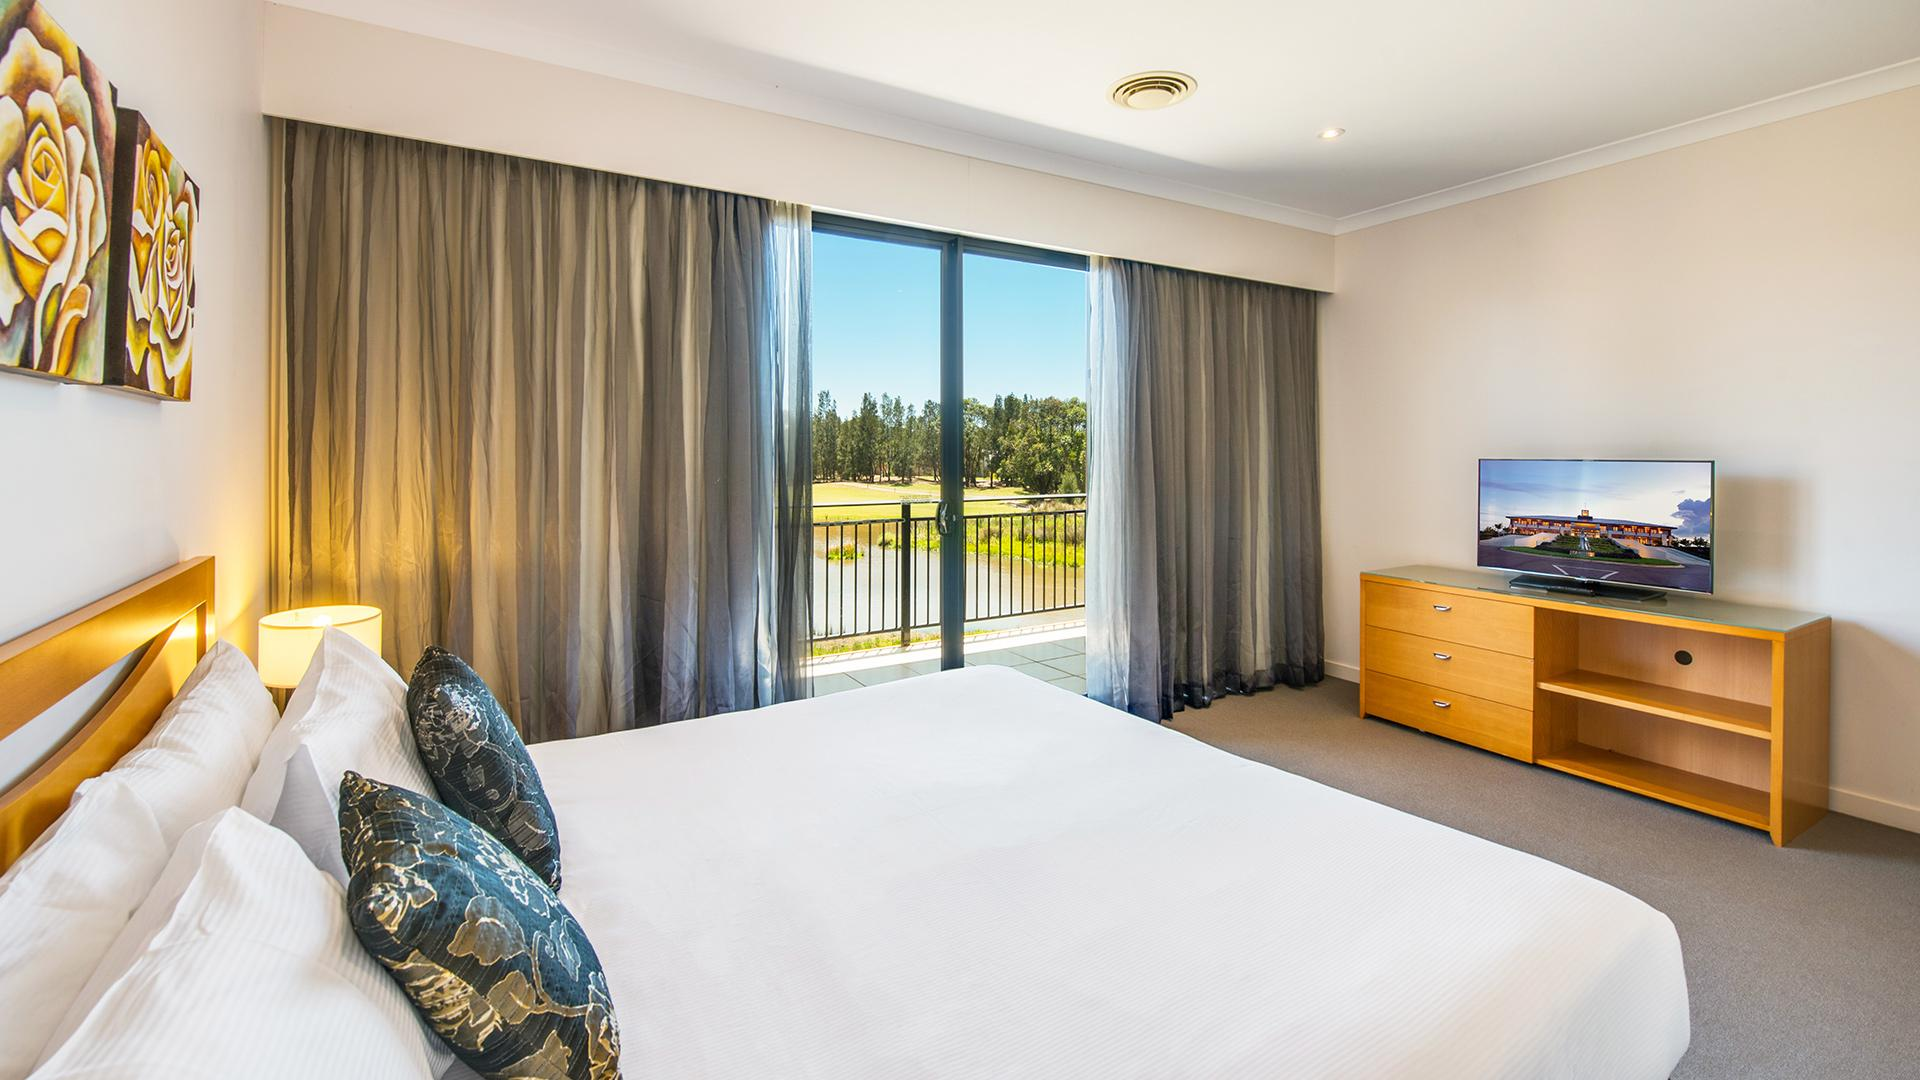 Two-Bedroom Apartment image 1 at Mercure Kooindah Waters Central Coast by Wyong Shire Council, New South Wales, Australia